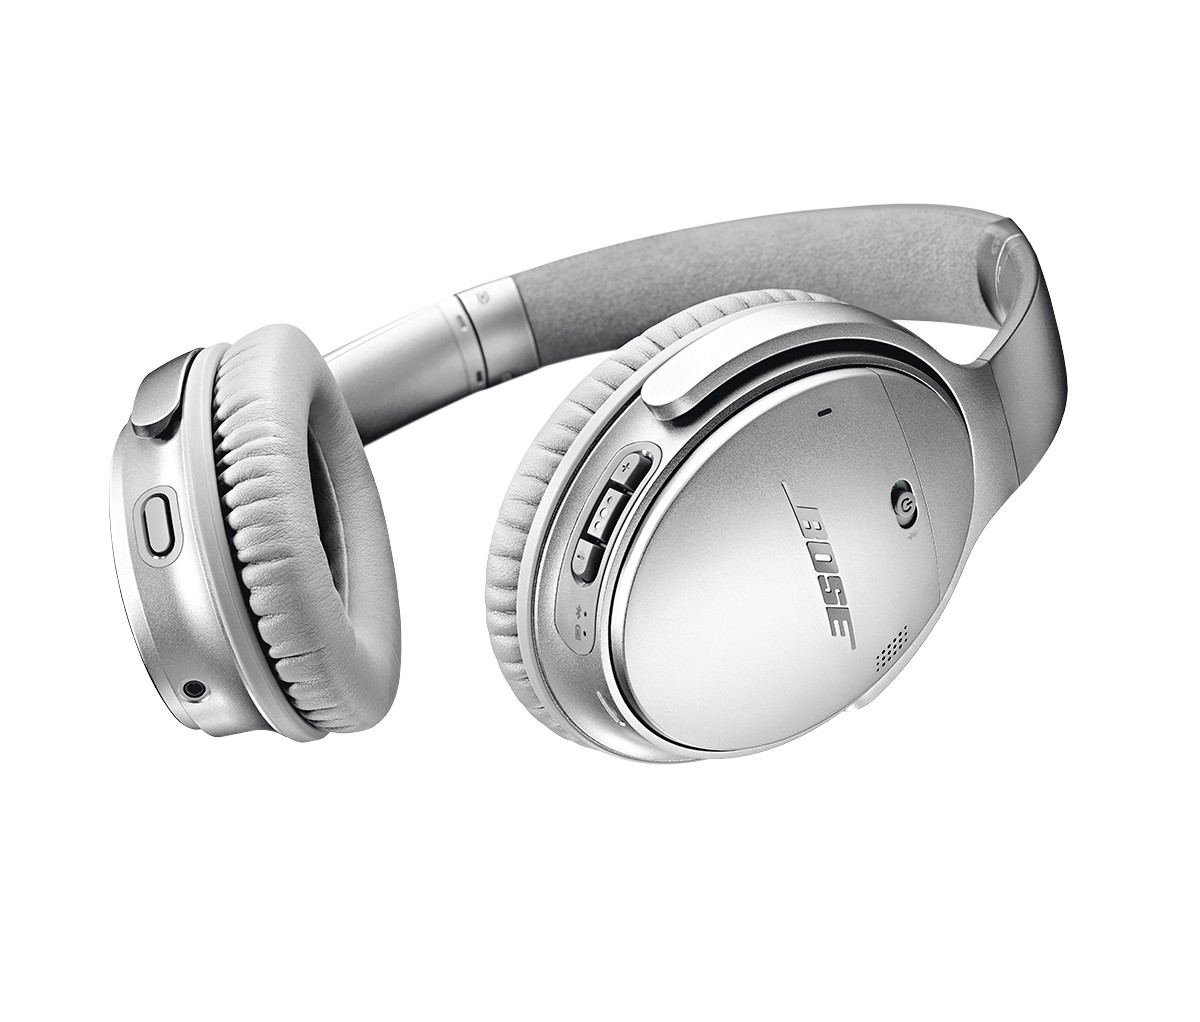 d7a0eee21ea The Bose QuietComfort 20 portable noise canceling earphones have a  isolating earbud design. Choose from around-ear or in-ear, wired and  wireless products ...